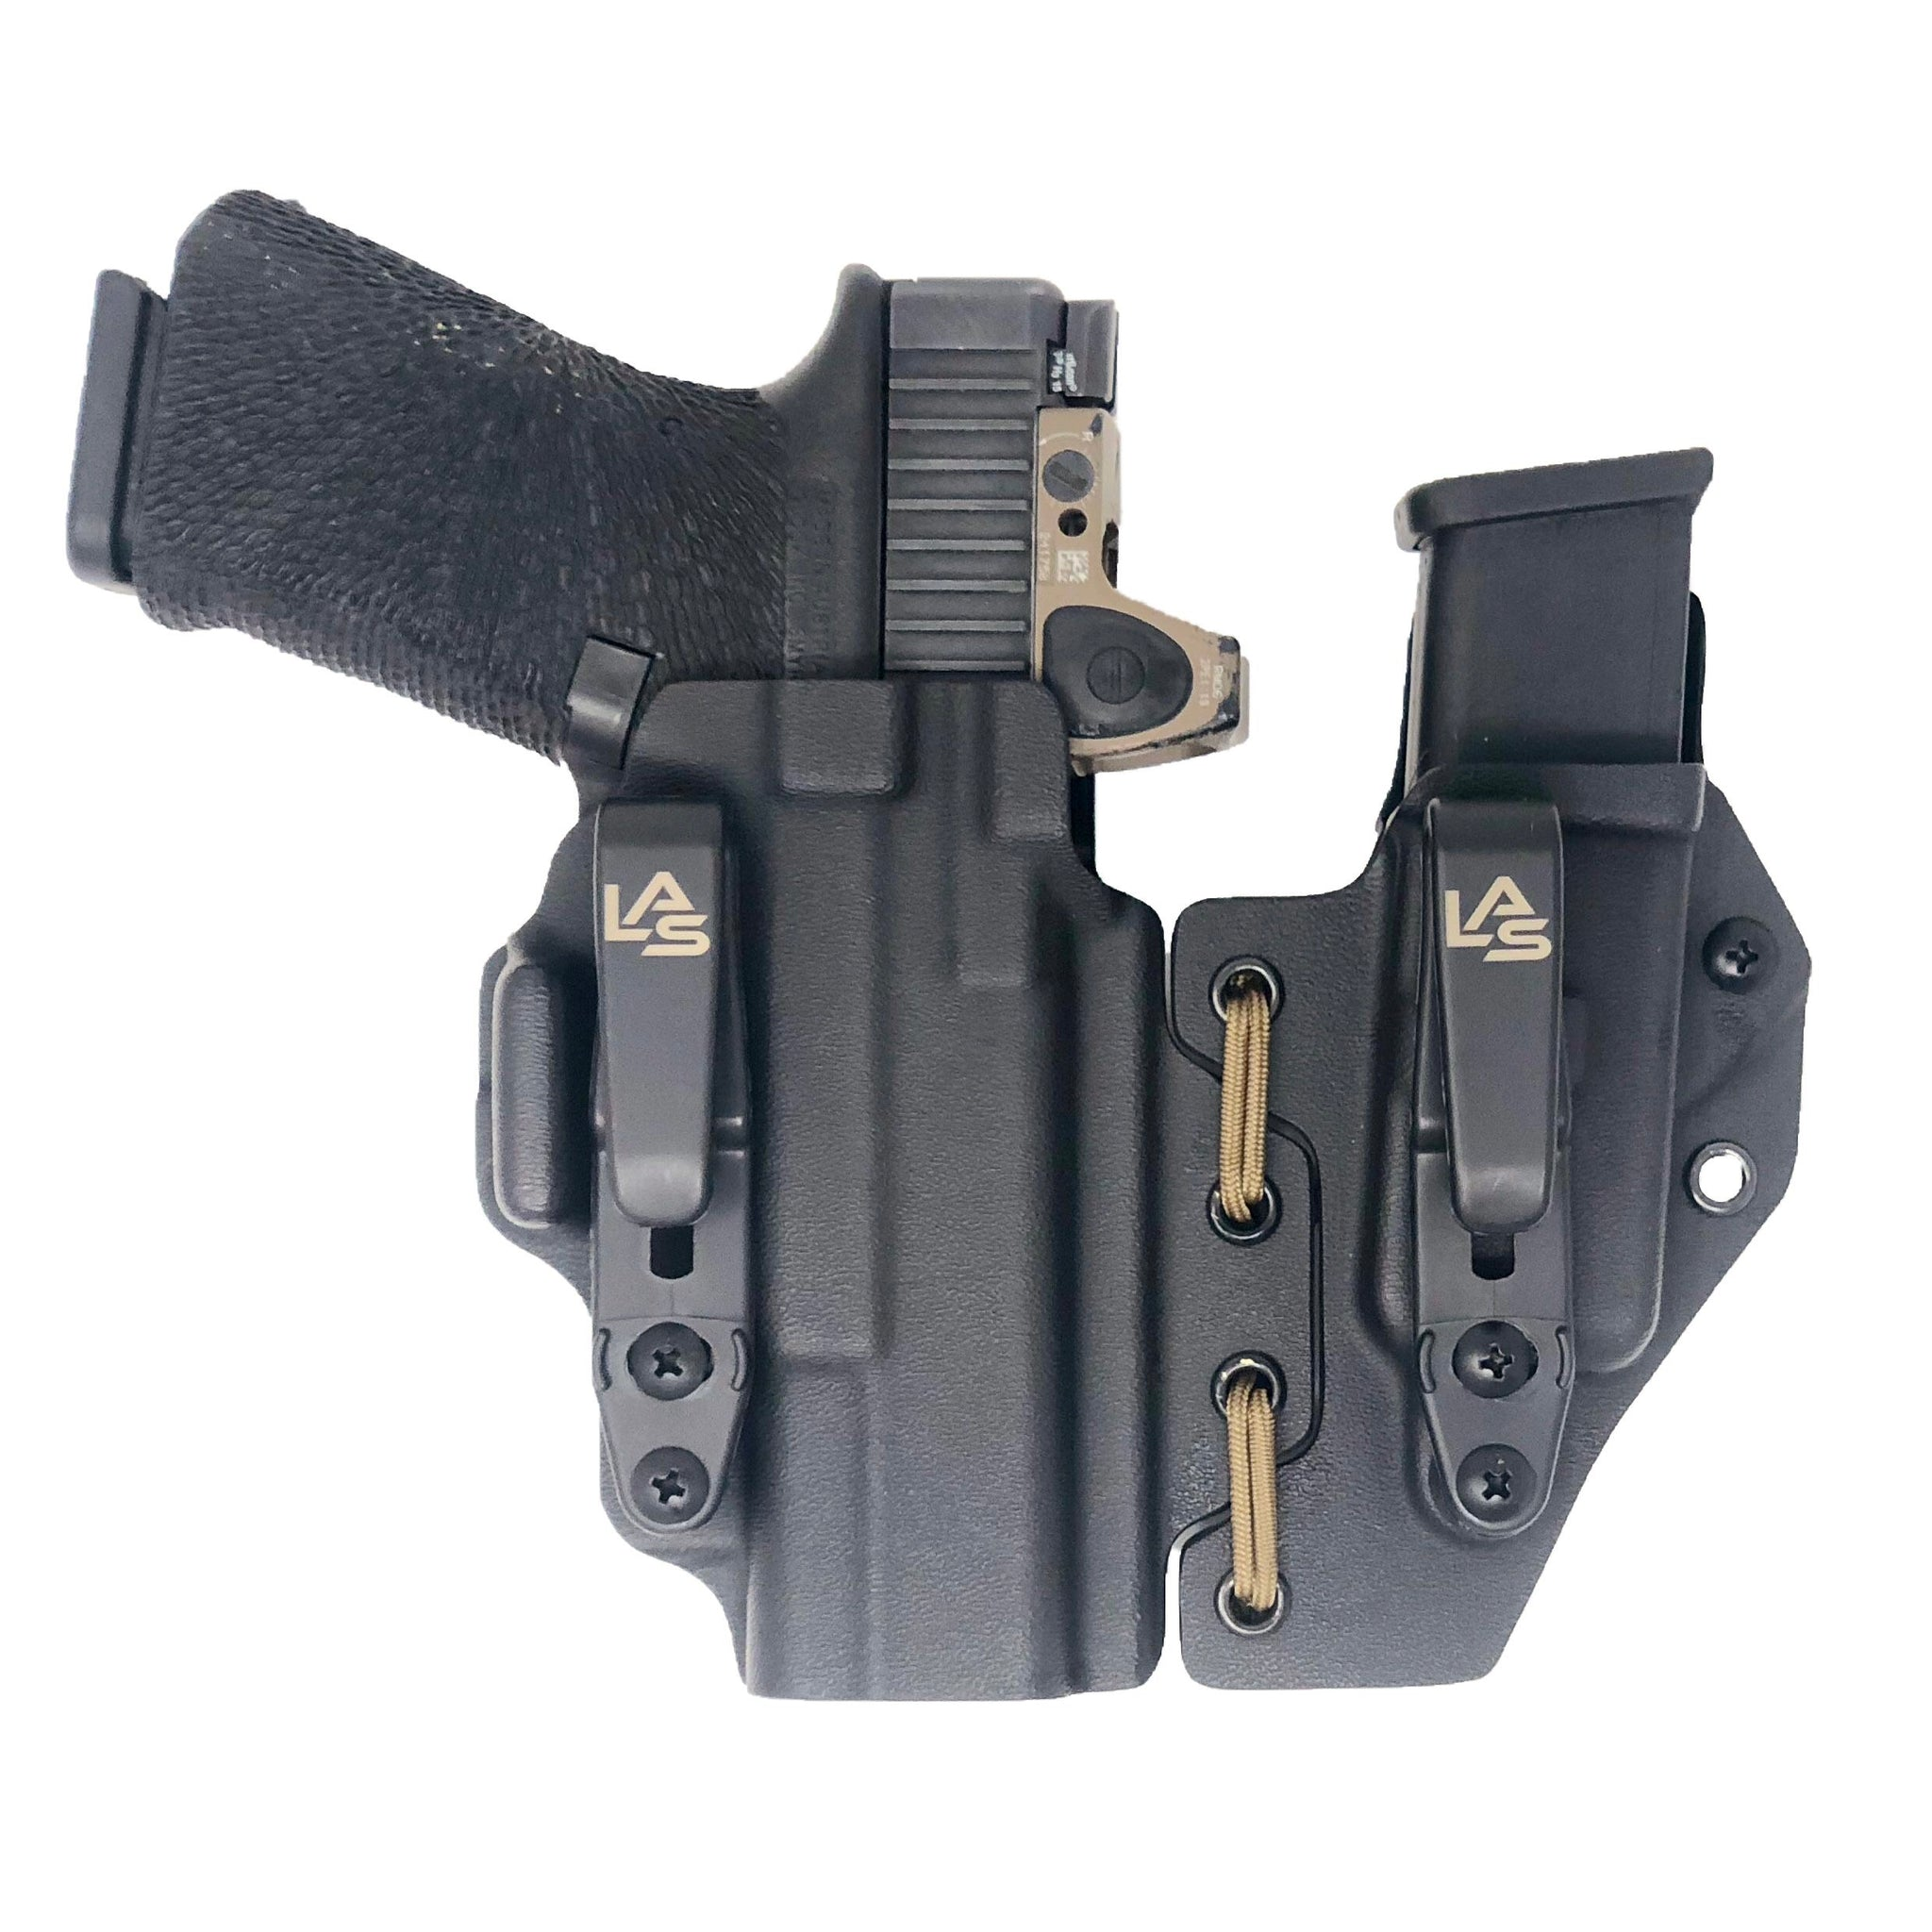 Loaded and Safe Concealment